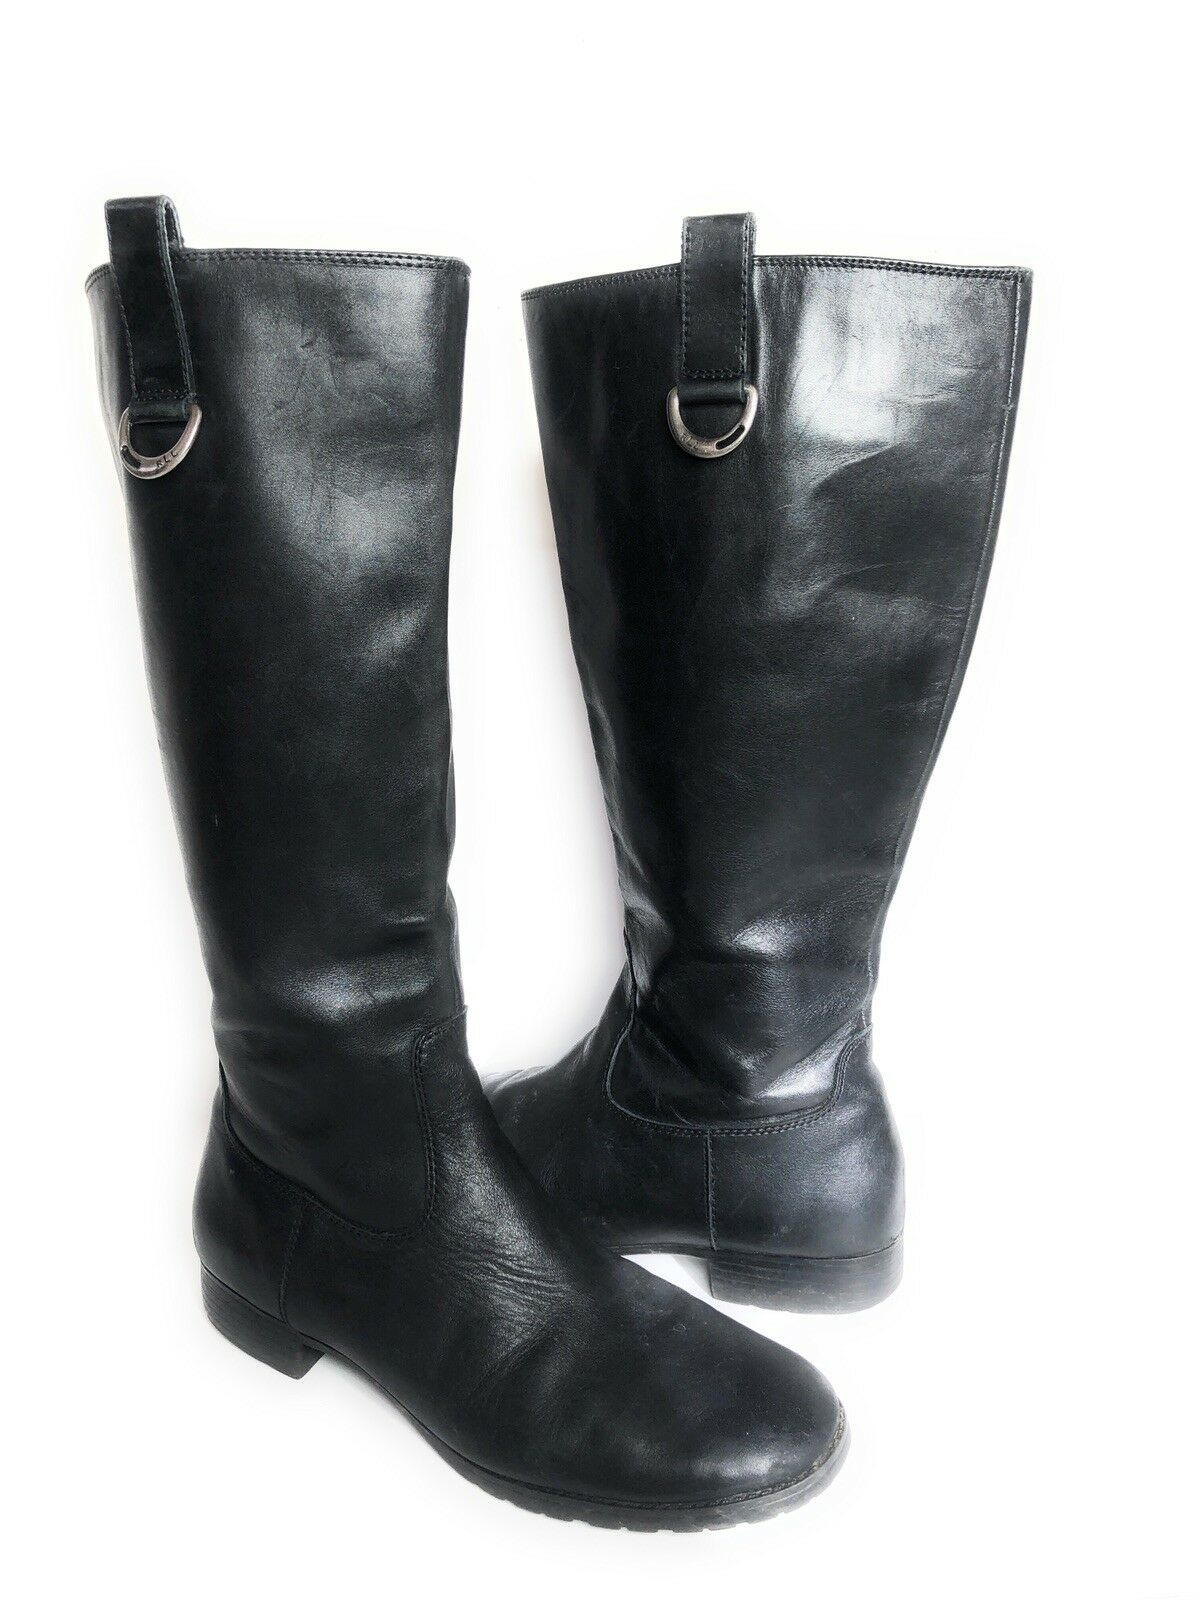 Lauren Ralph Lauren SAGIRA II Women's Boots Tall 9.5 B Black Leather Riding